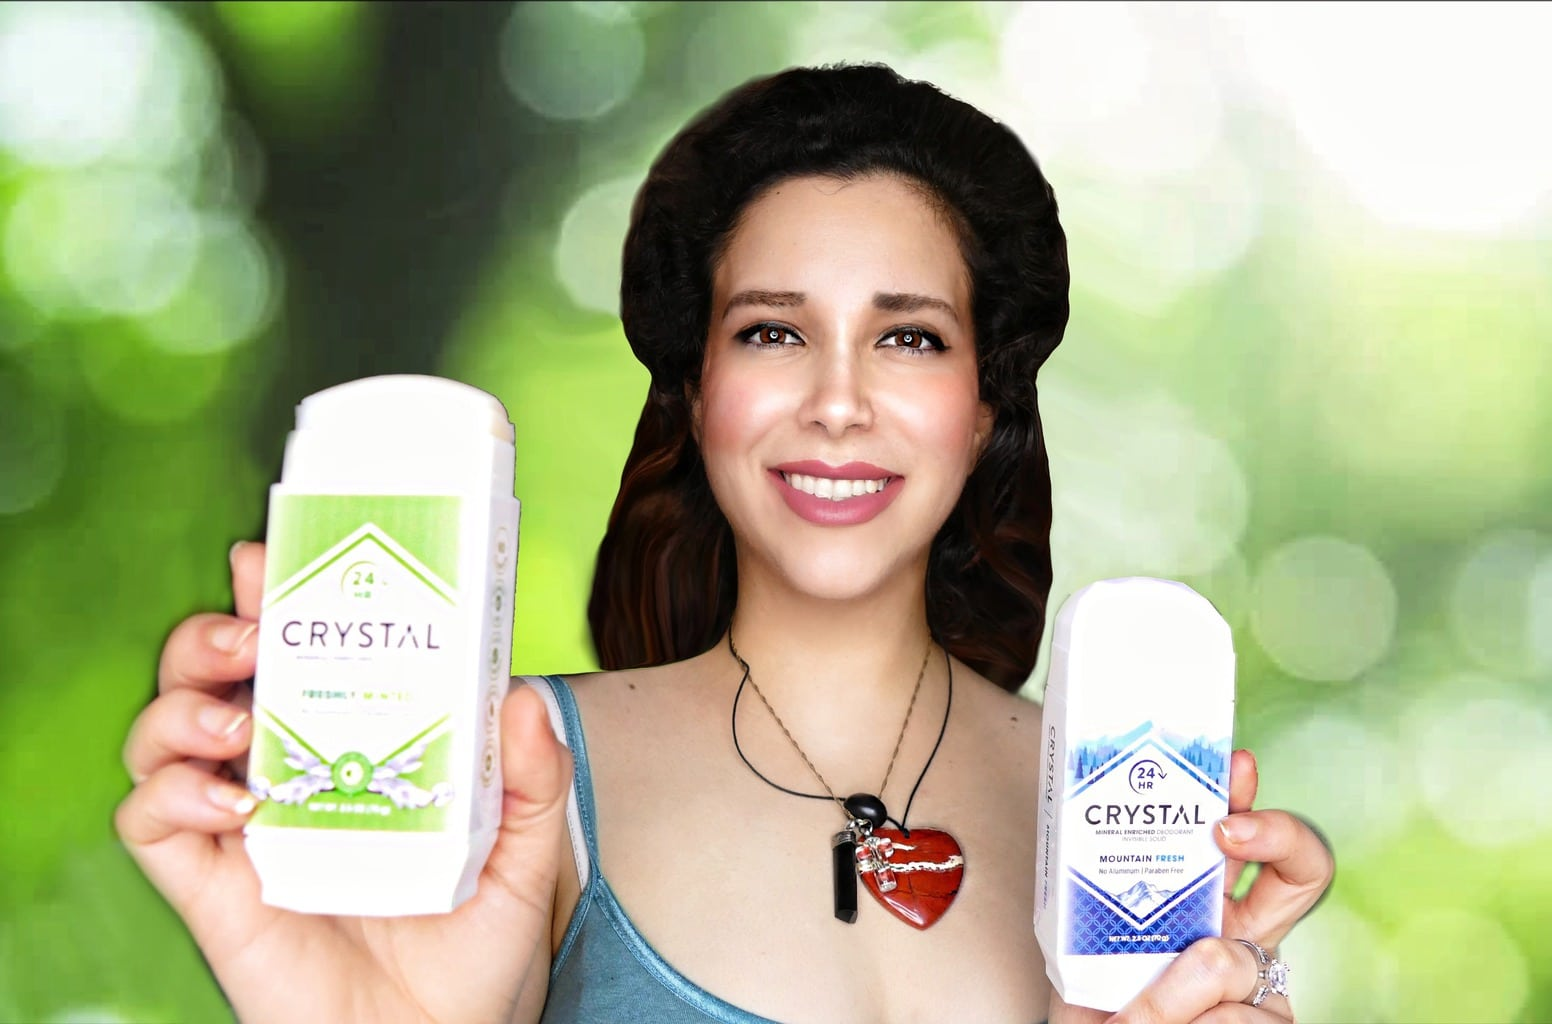 @maddyreviews's cover photo for 'Crystal Mineral Enriched Invisible Solid the Natural Deodorant Review'